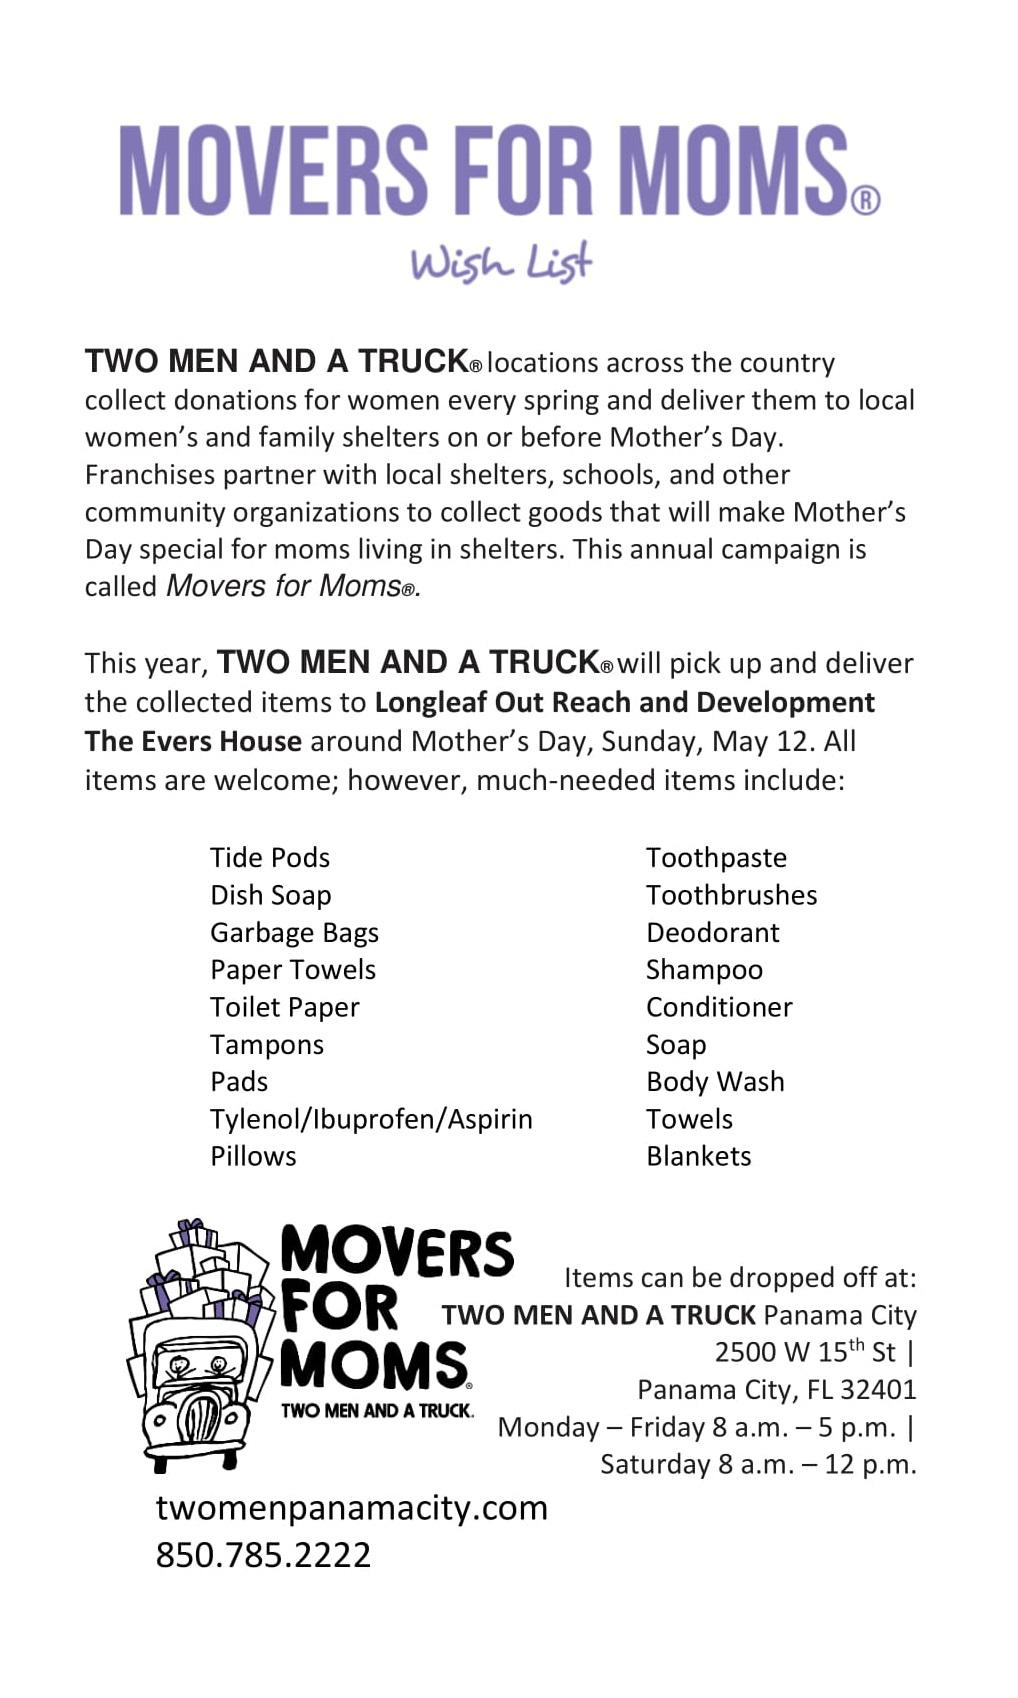 2019 TWO MEN AND A TRUCK Panama City Movers for Moms Wish List